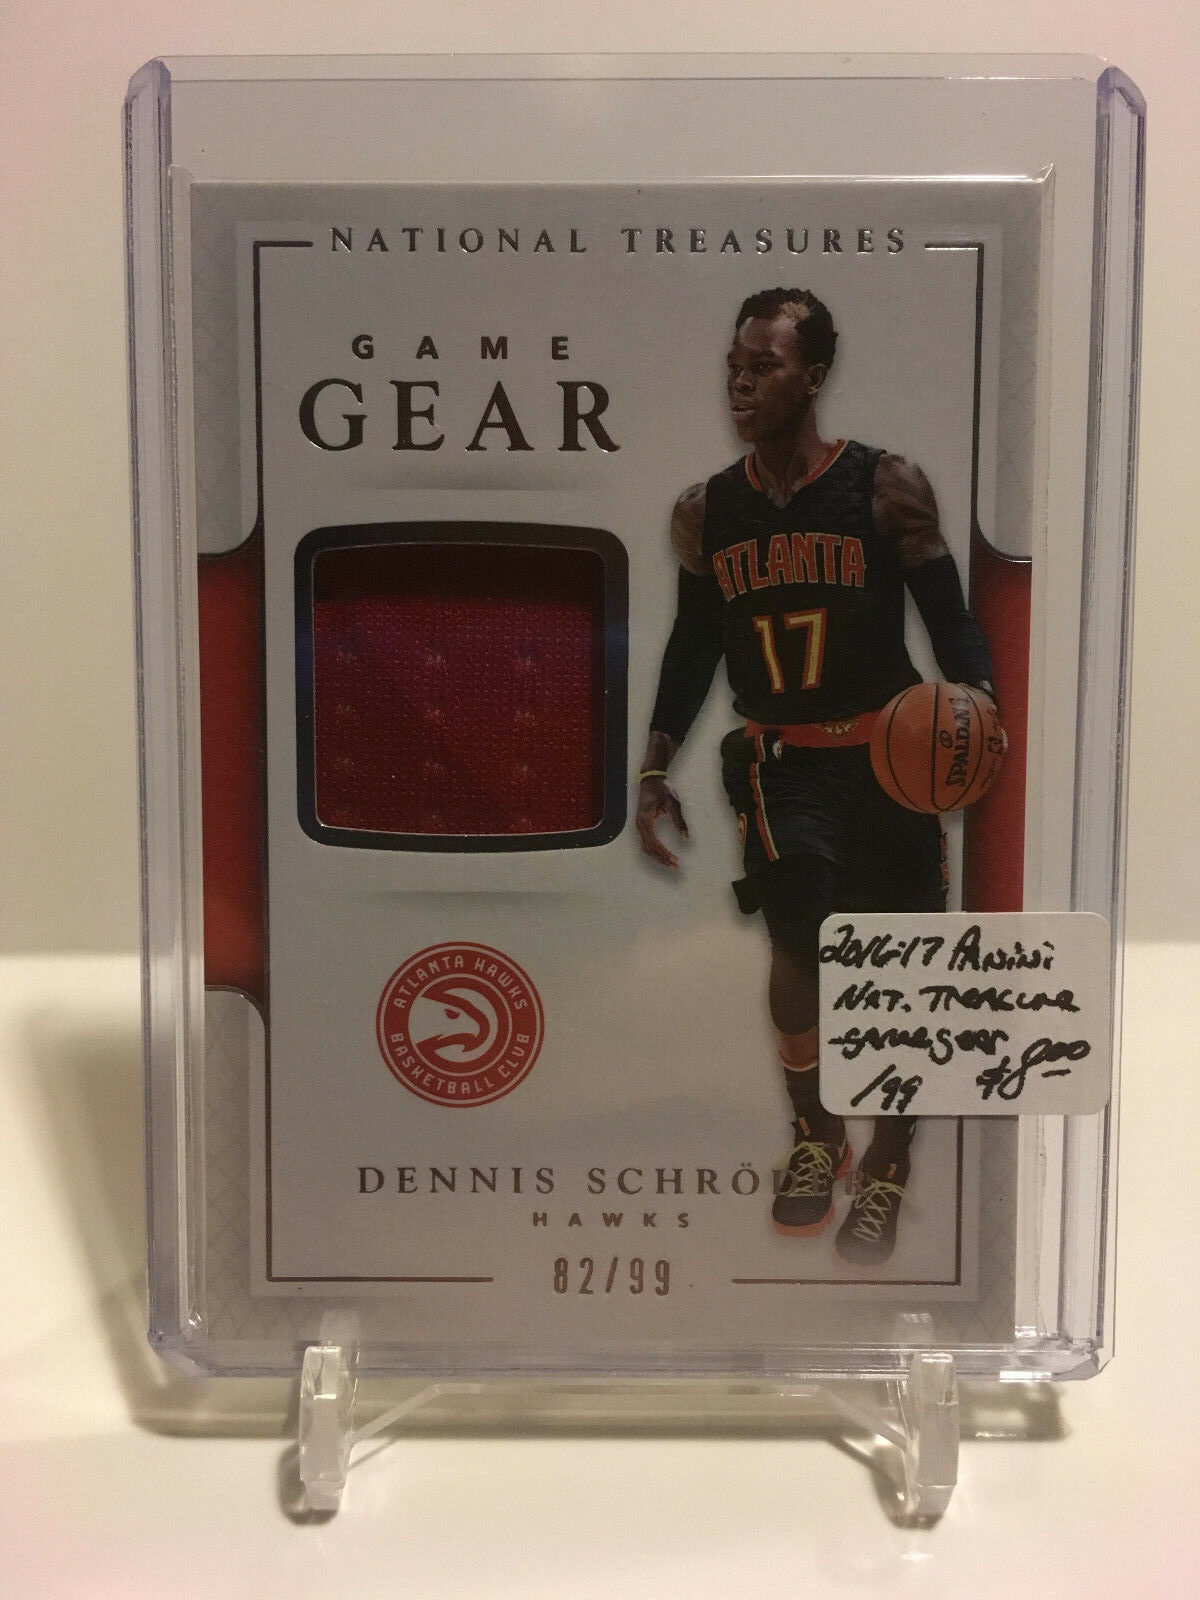 Primary image for 2016-17 Panini National Treasures - Game Gear AUTO #11 Dennis Schroder 82/99